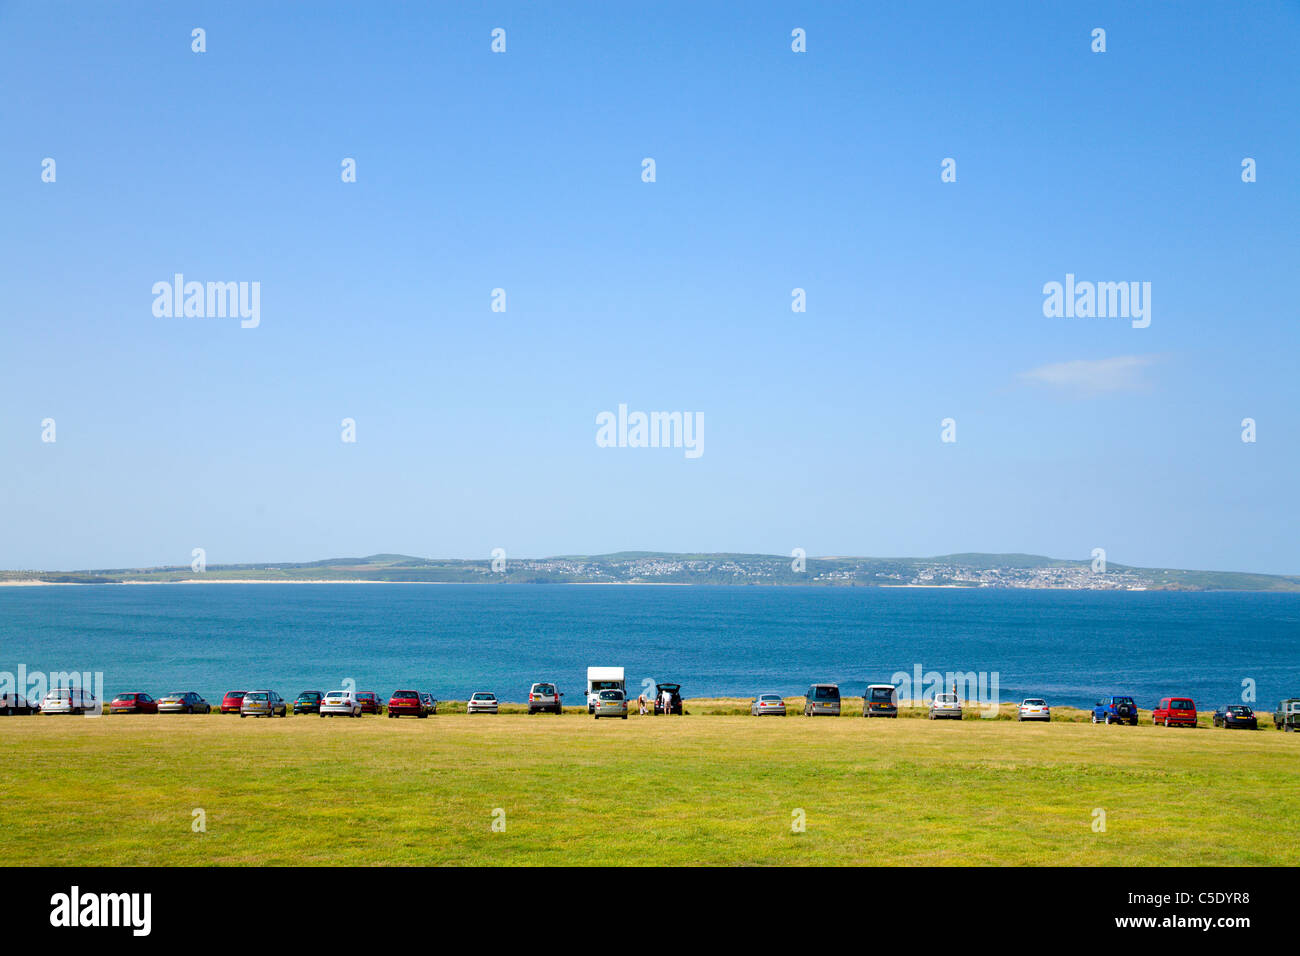 Mid distance shot of parked cars at St Ives Bay with landscape in the foreground - Stock Image